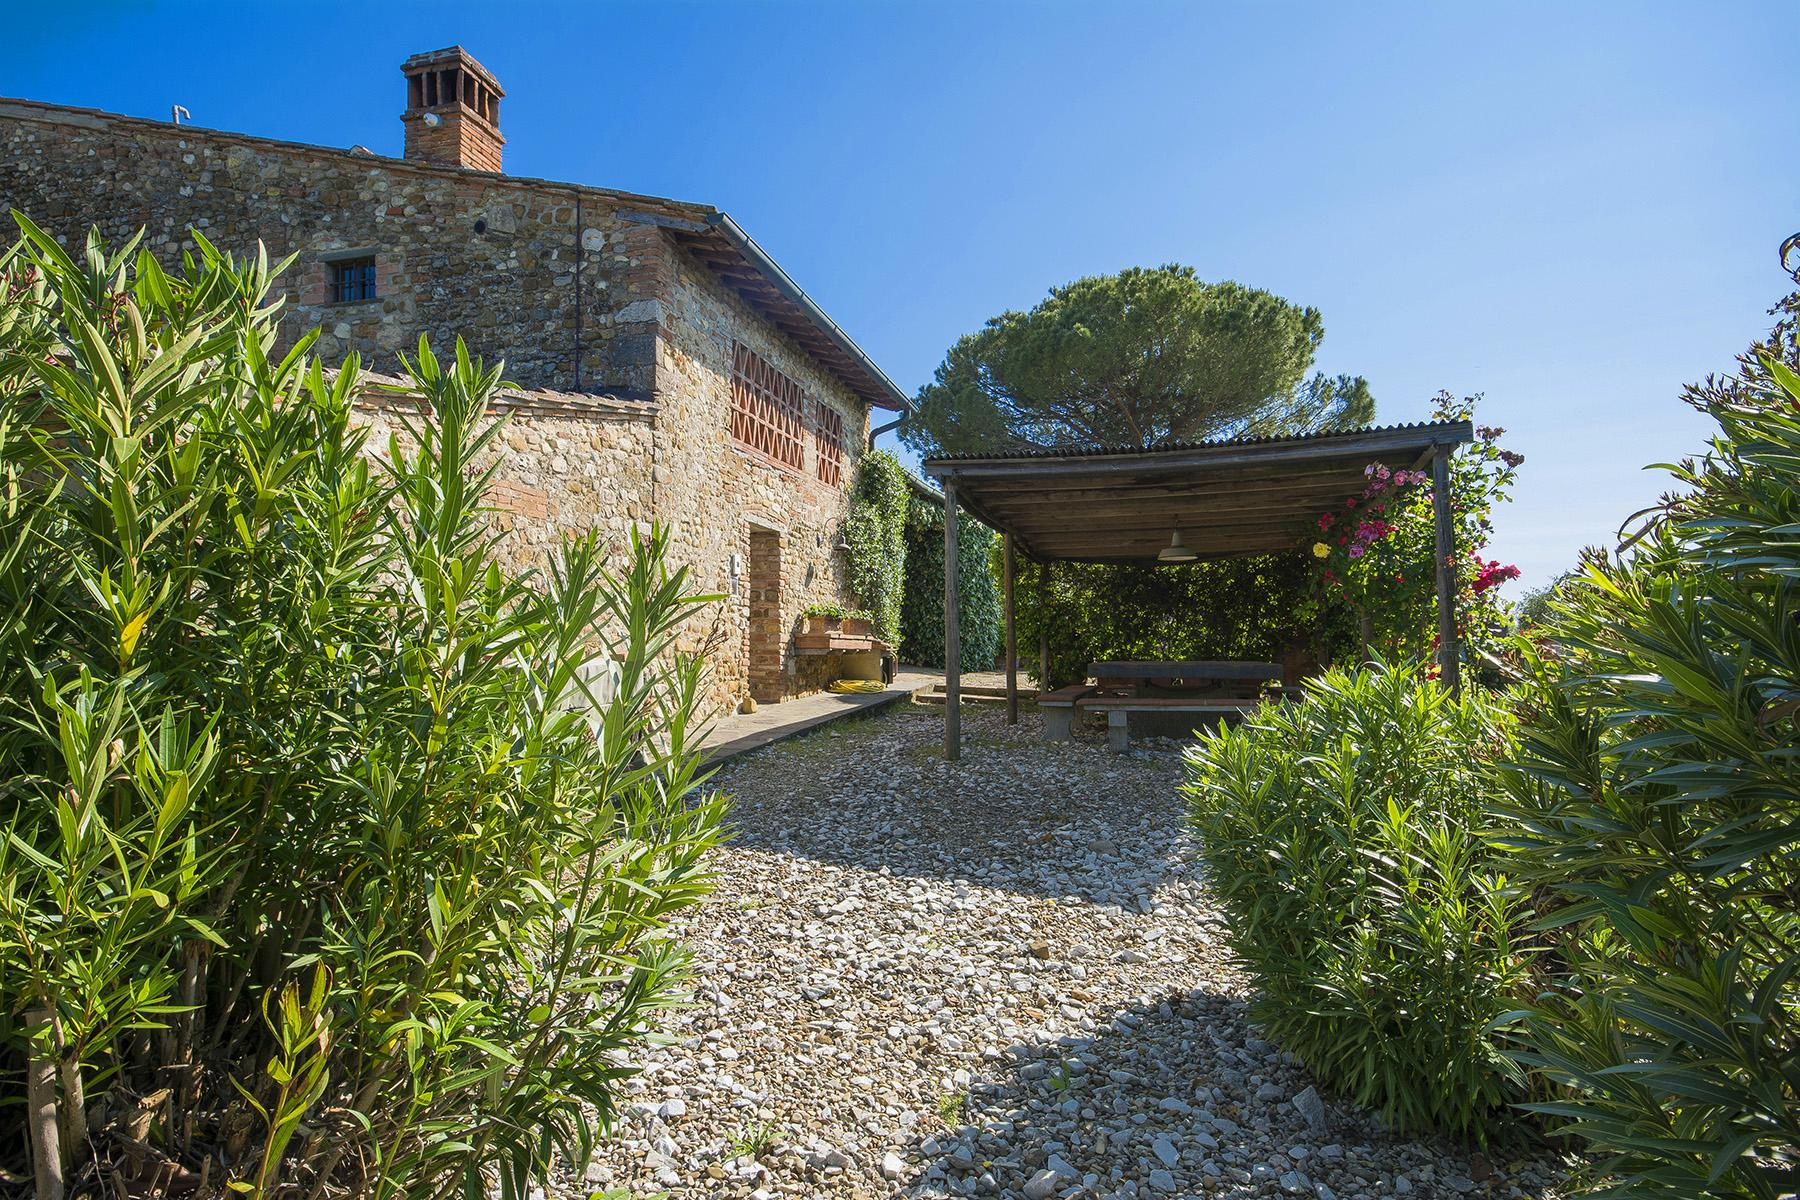 Beautiful countryhouse in the Chianti area - 10